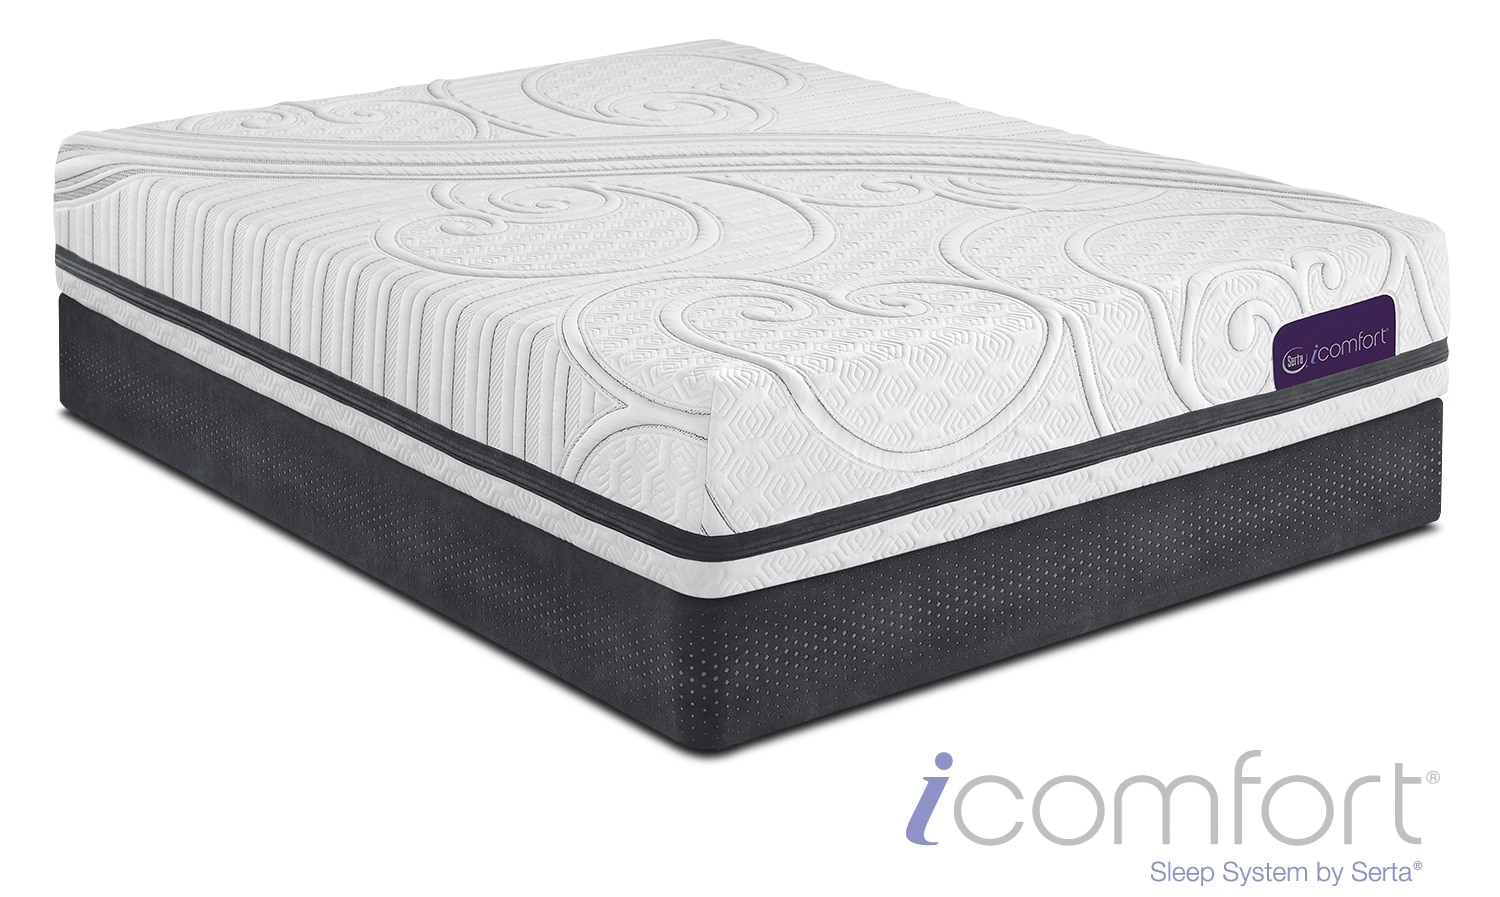 savant iii firm queen mattress and lowprofile foundation set